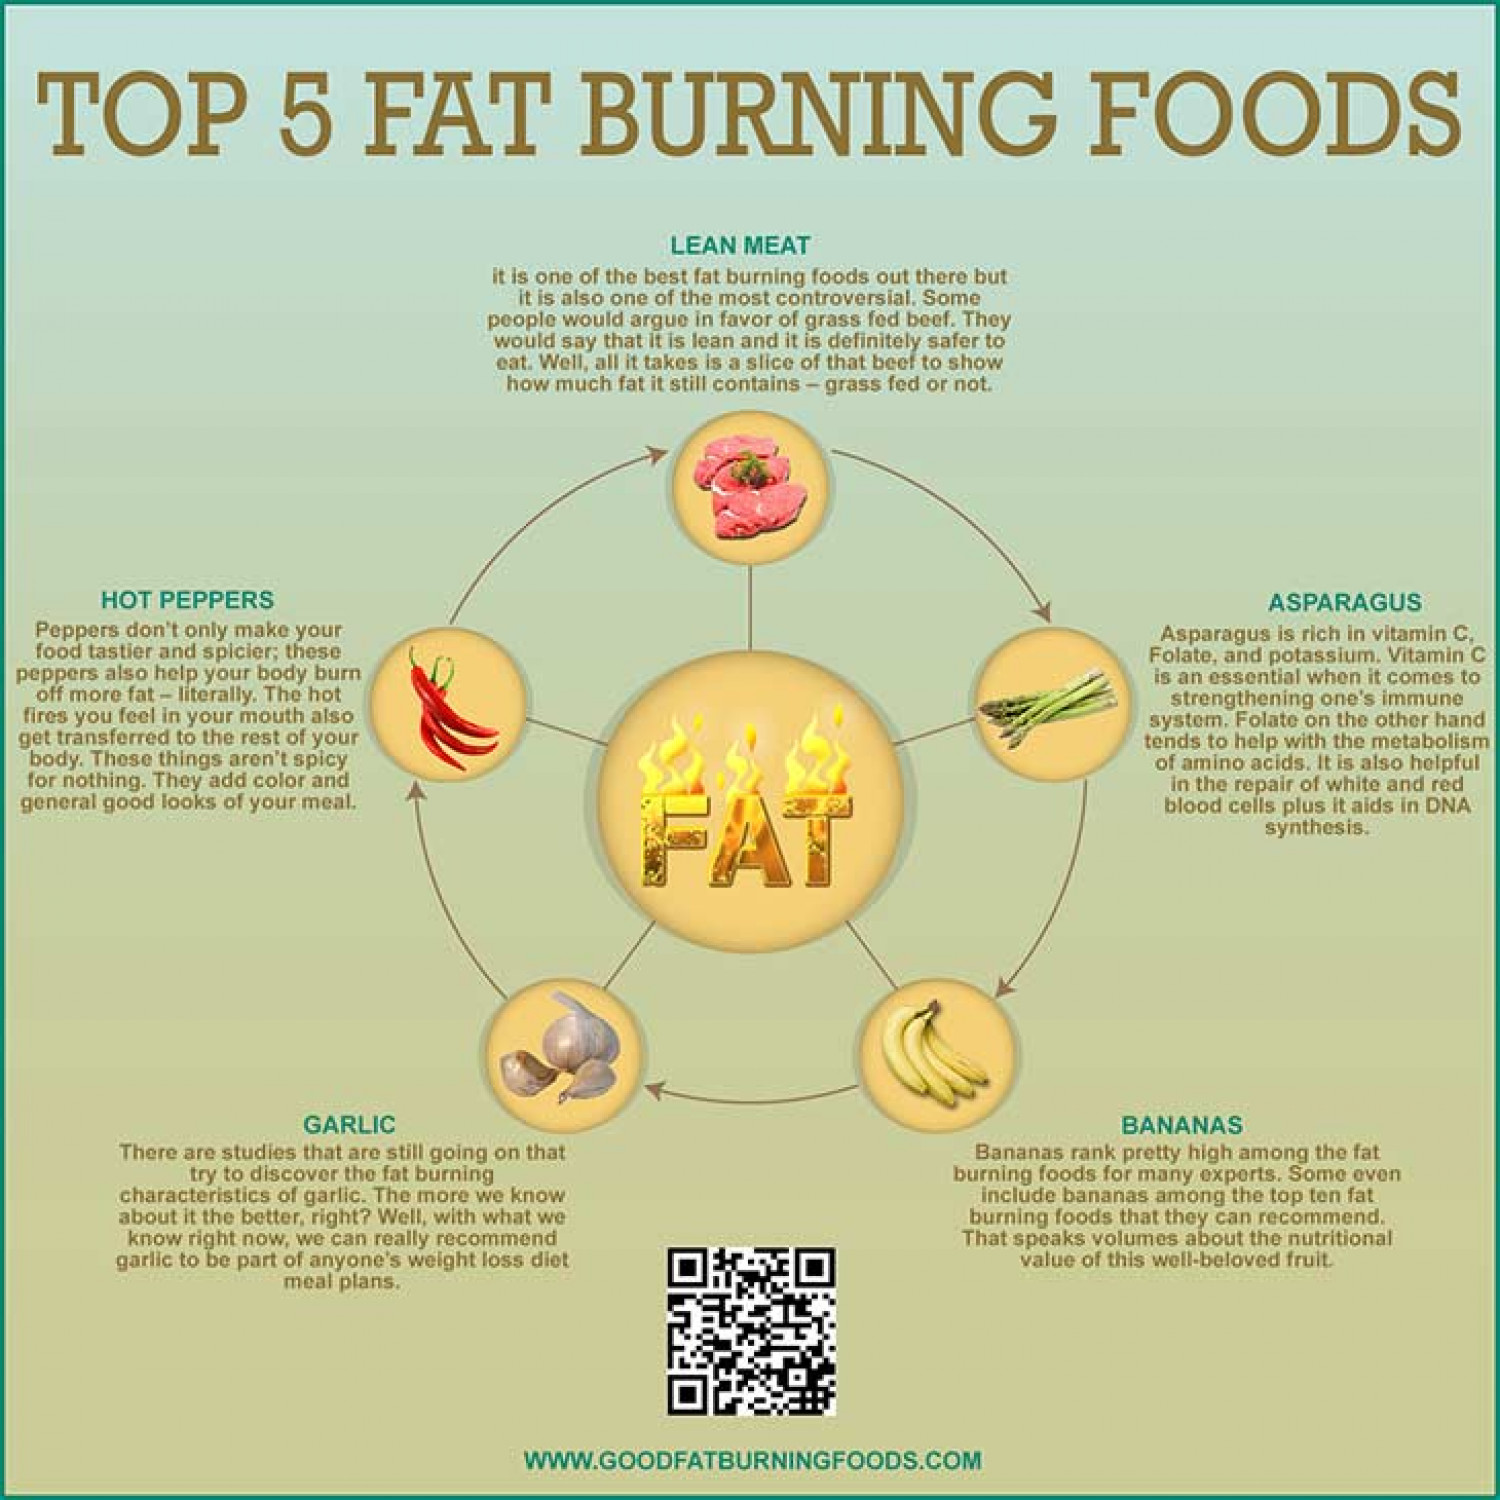 Top 5 Fat Burning Foods Infographic